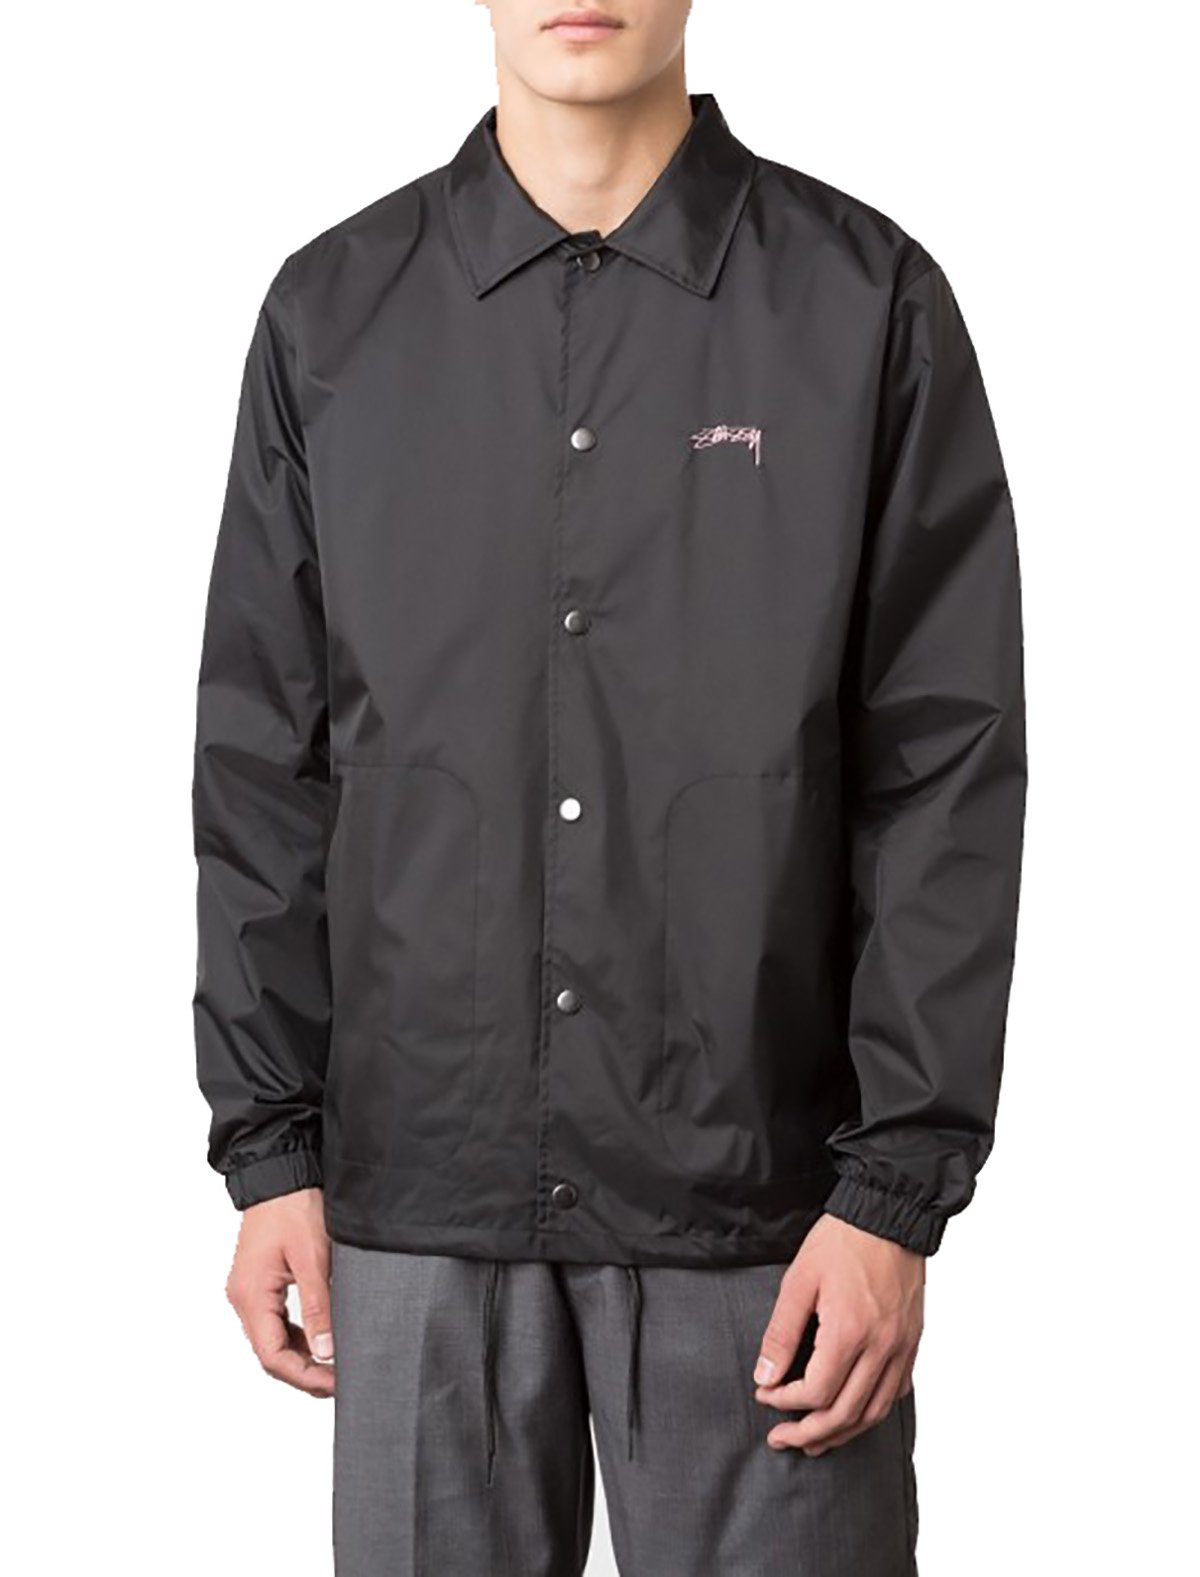 STUSSY SUMMER COACH JACKET (Large, Black)